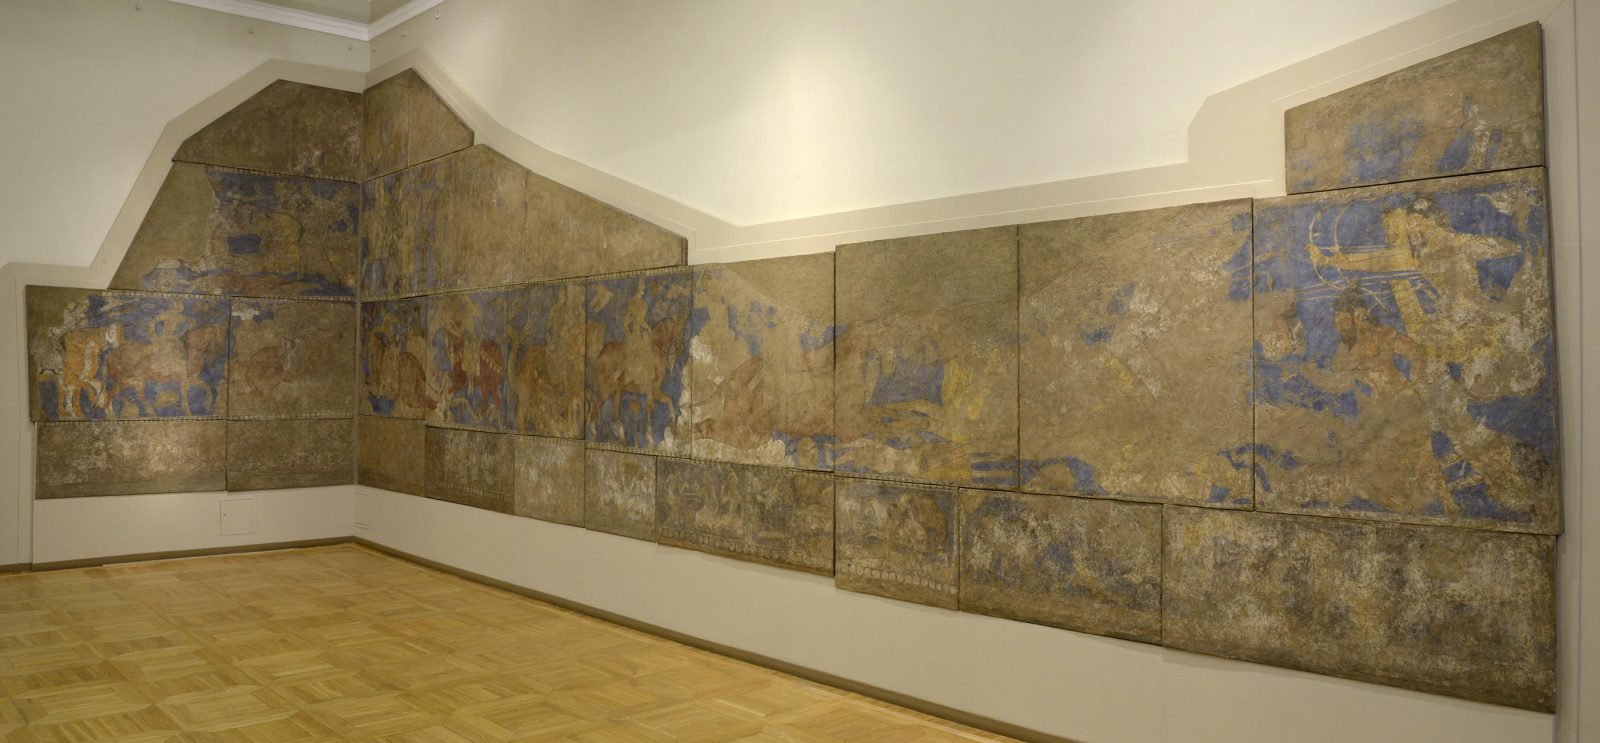 A series of paintings shows the story of the legendary hero, Rustam, This image shows how the paintings are preserved in the Hermitage museum today.